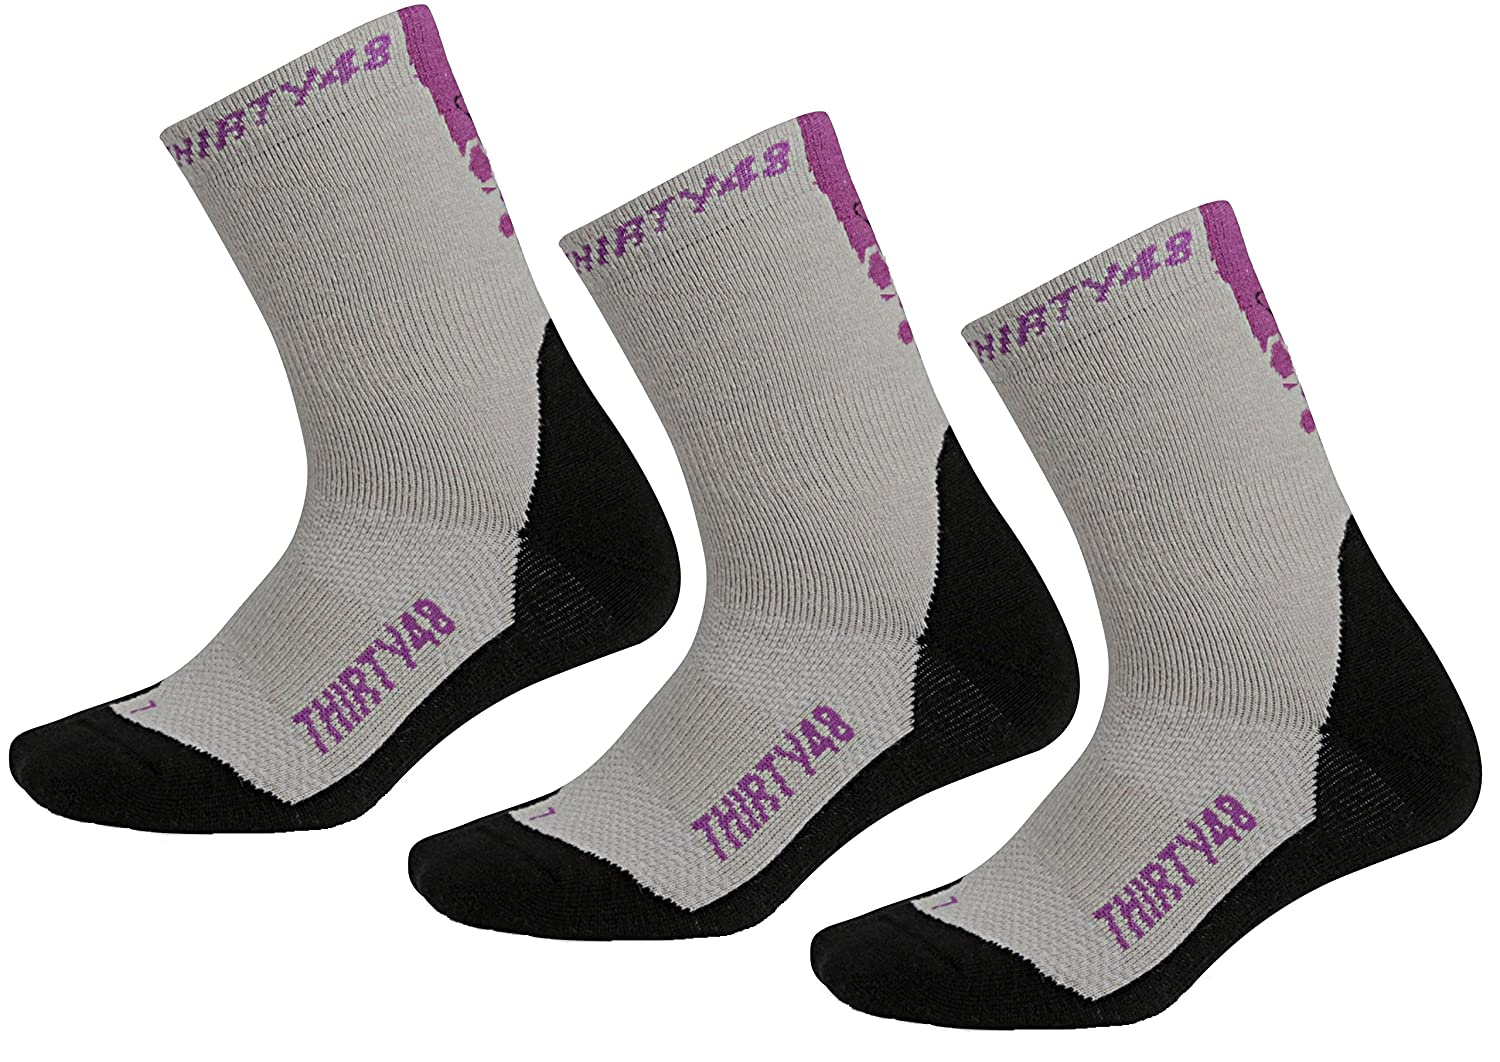 Thirty48 HK4PRG-3PK Durable Socks for Hiking, Mountain Climbing, Winter, Outdoor, Boots, Camping, Travel Purple/Gray Extra Large